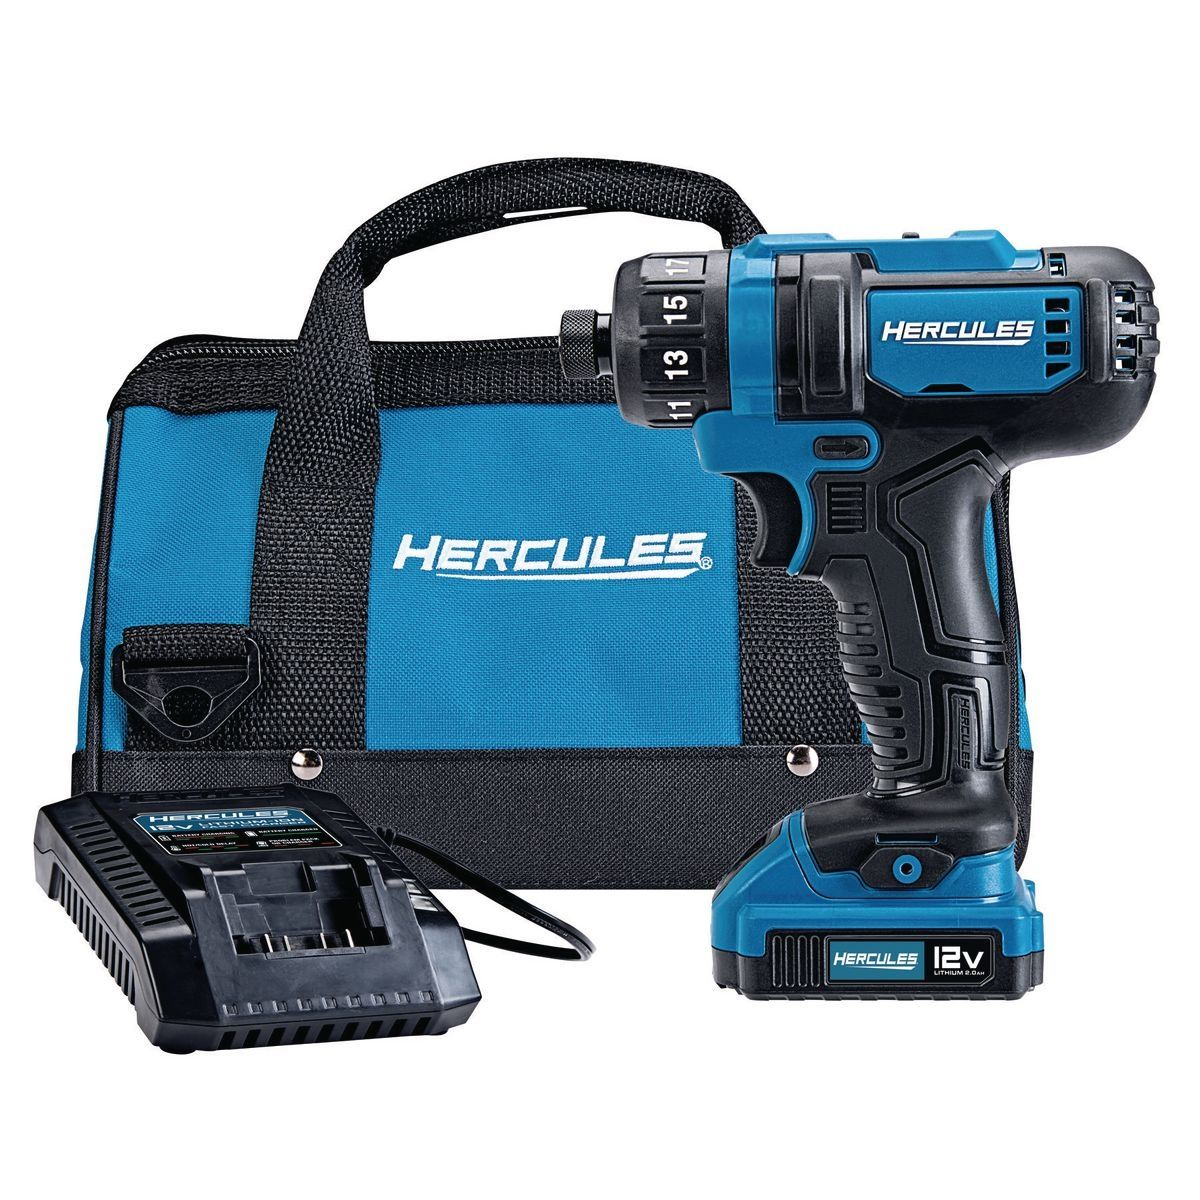 The 12V Hercules® Cordless Screwdriver Kit features a ¼